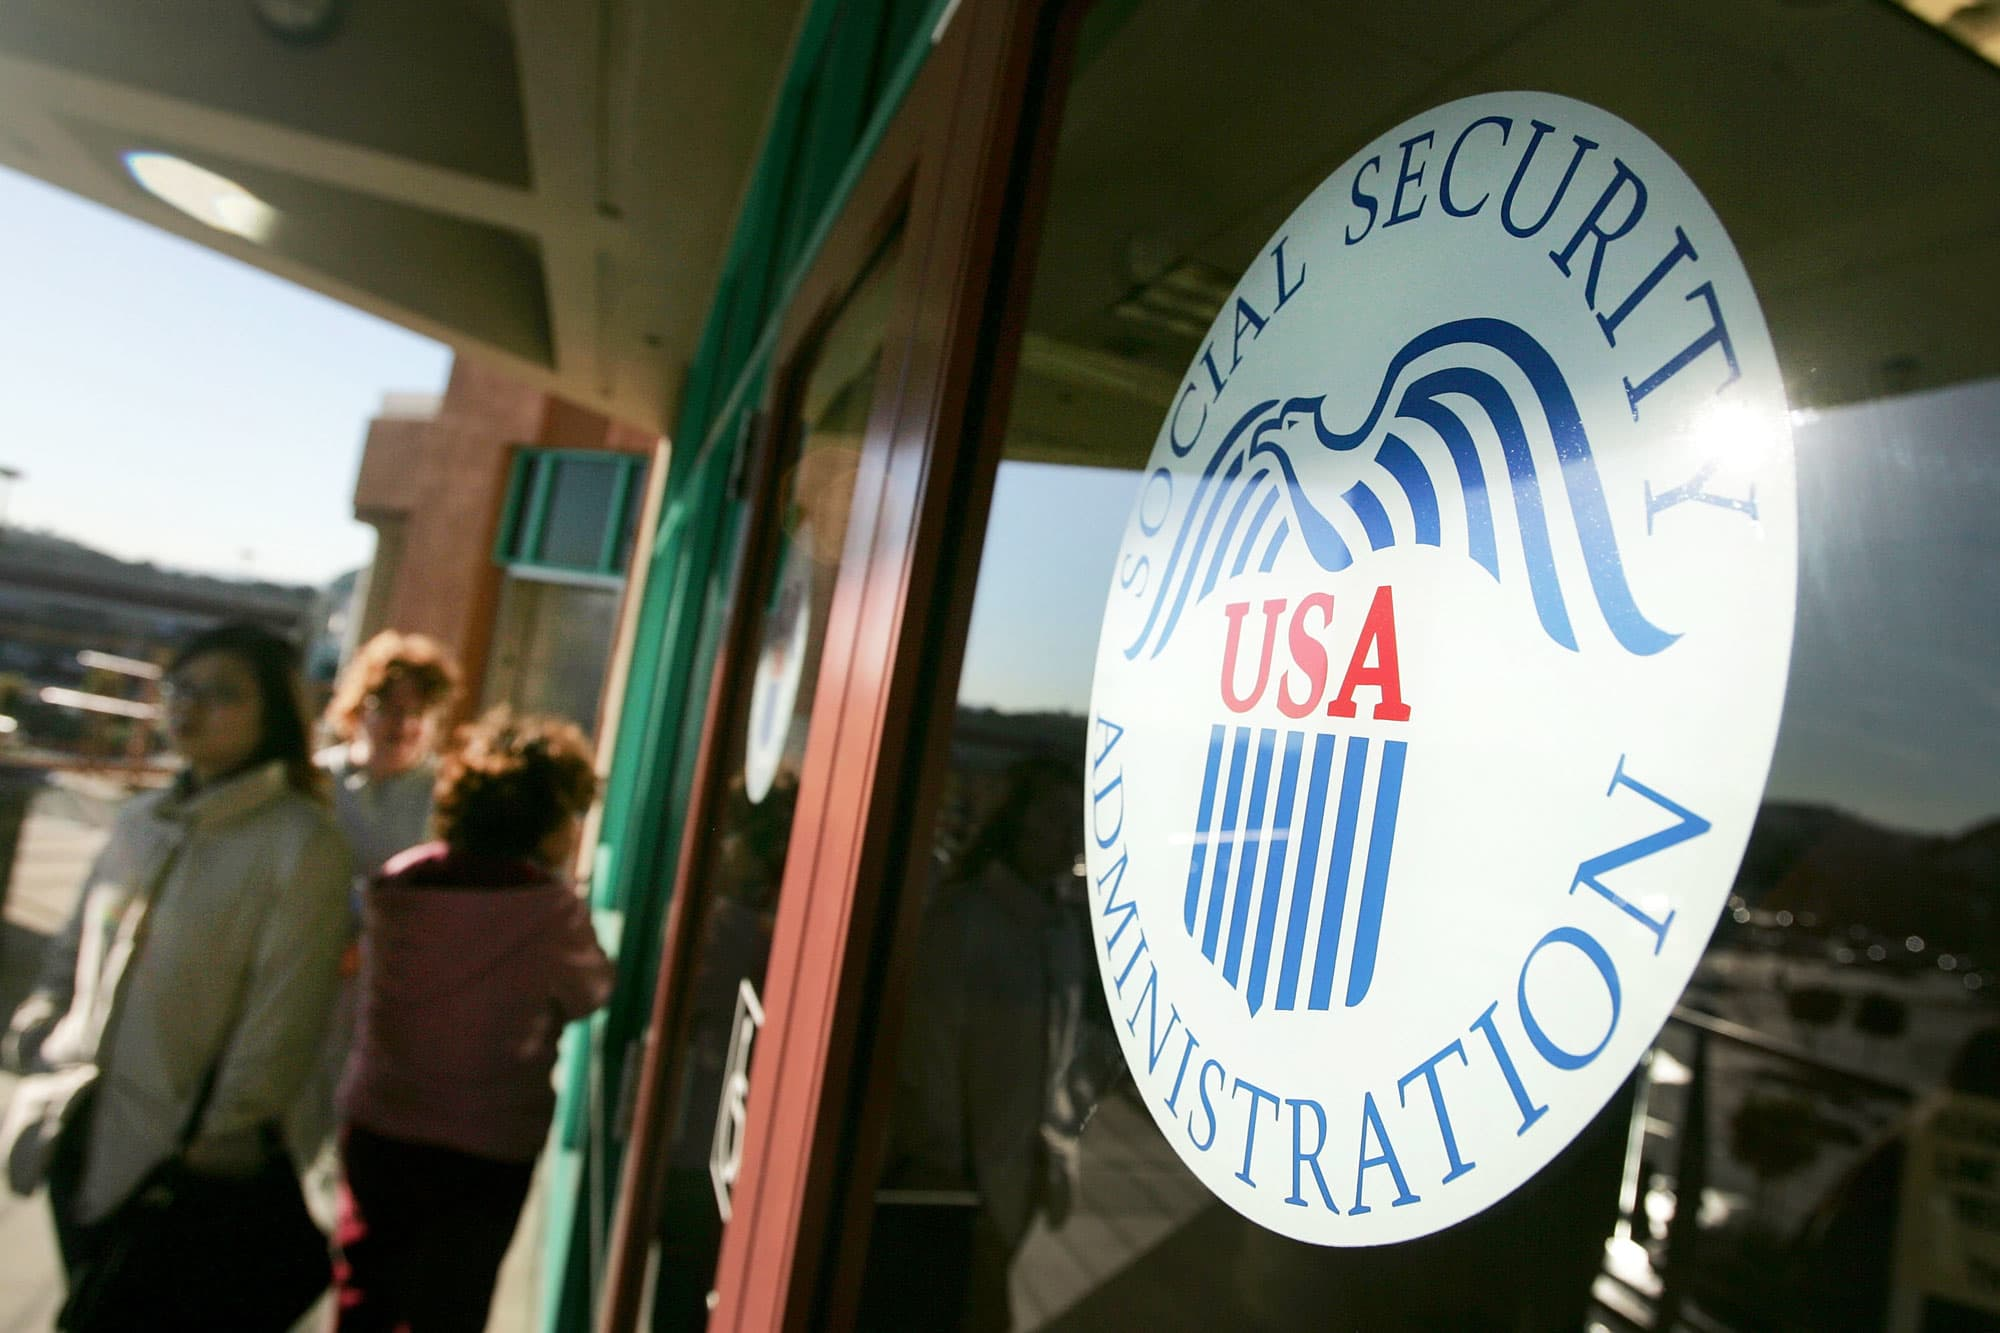 There's new leadership at the Social Security Administration. Here's why some retirement advocates applaud the move